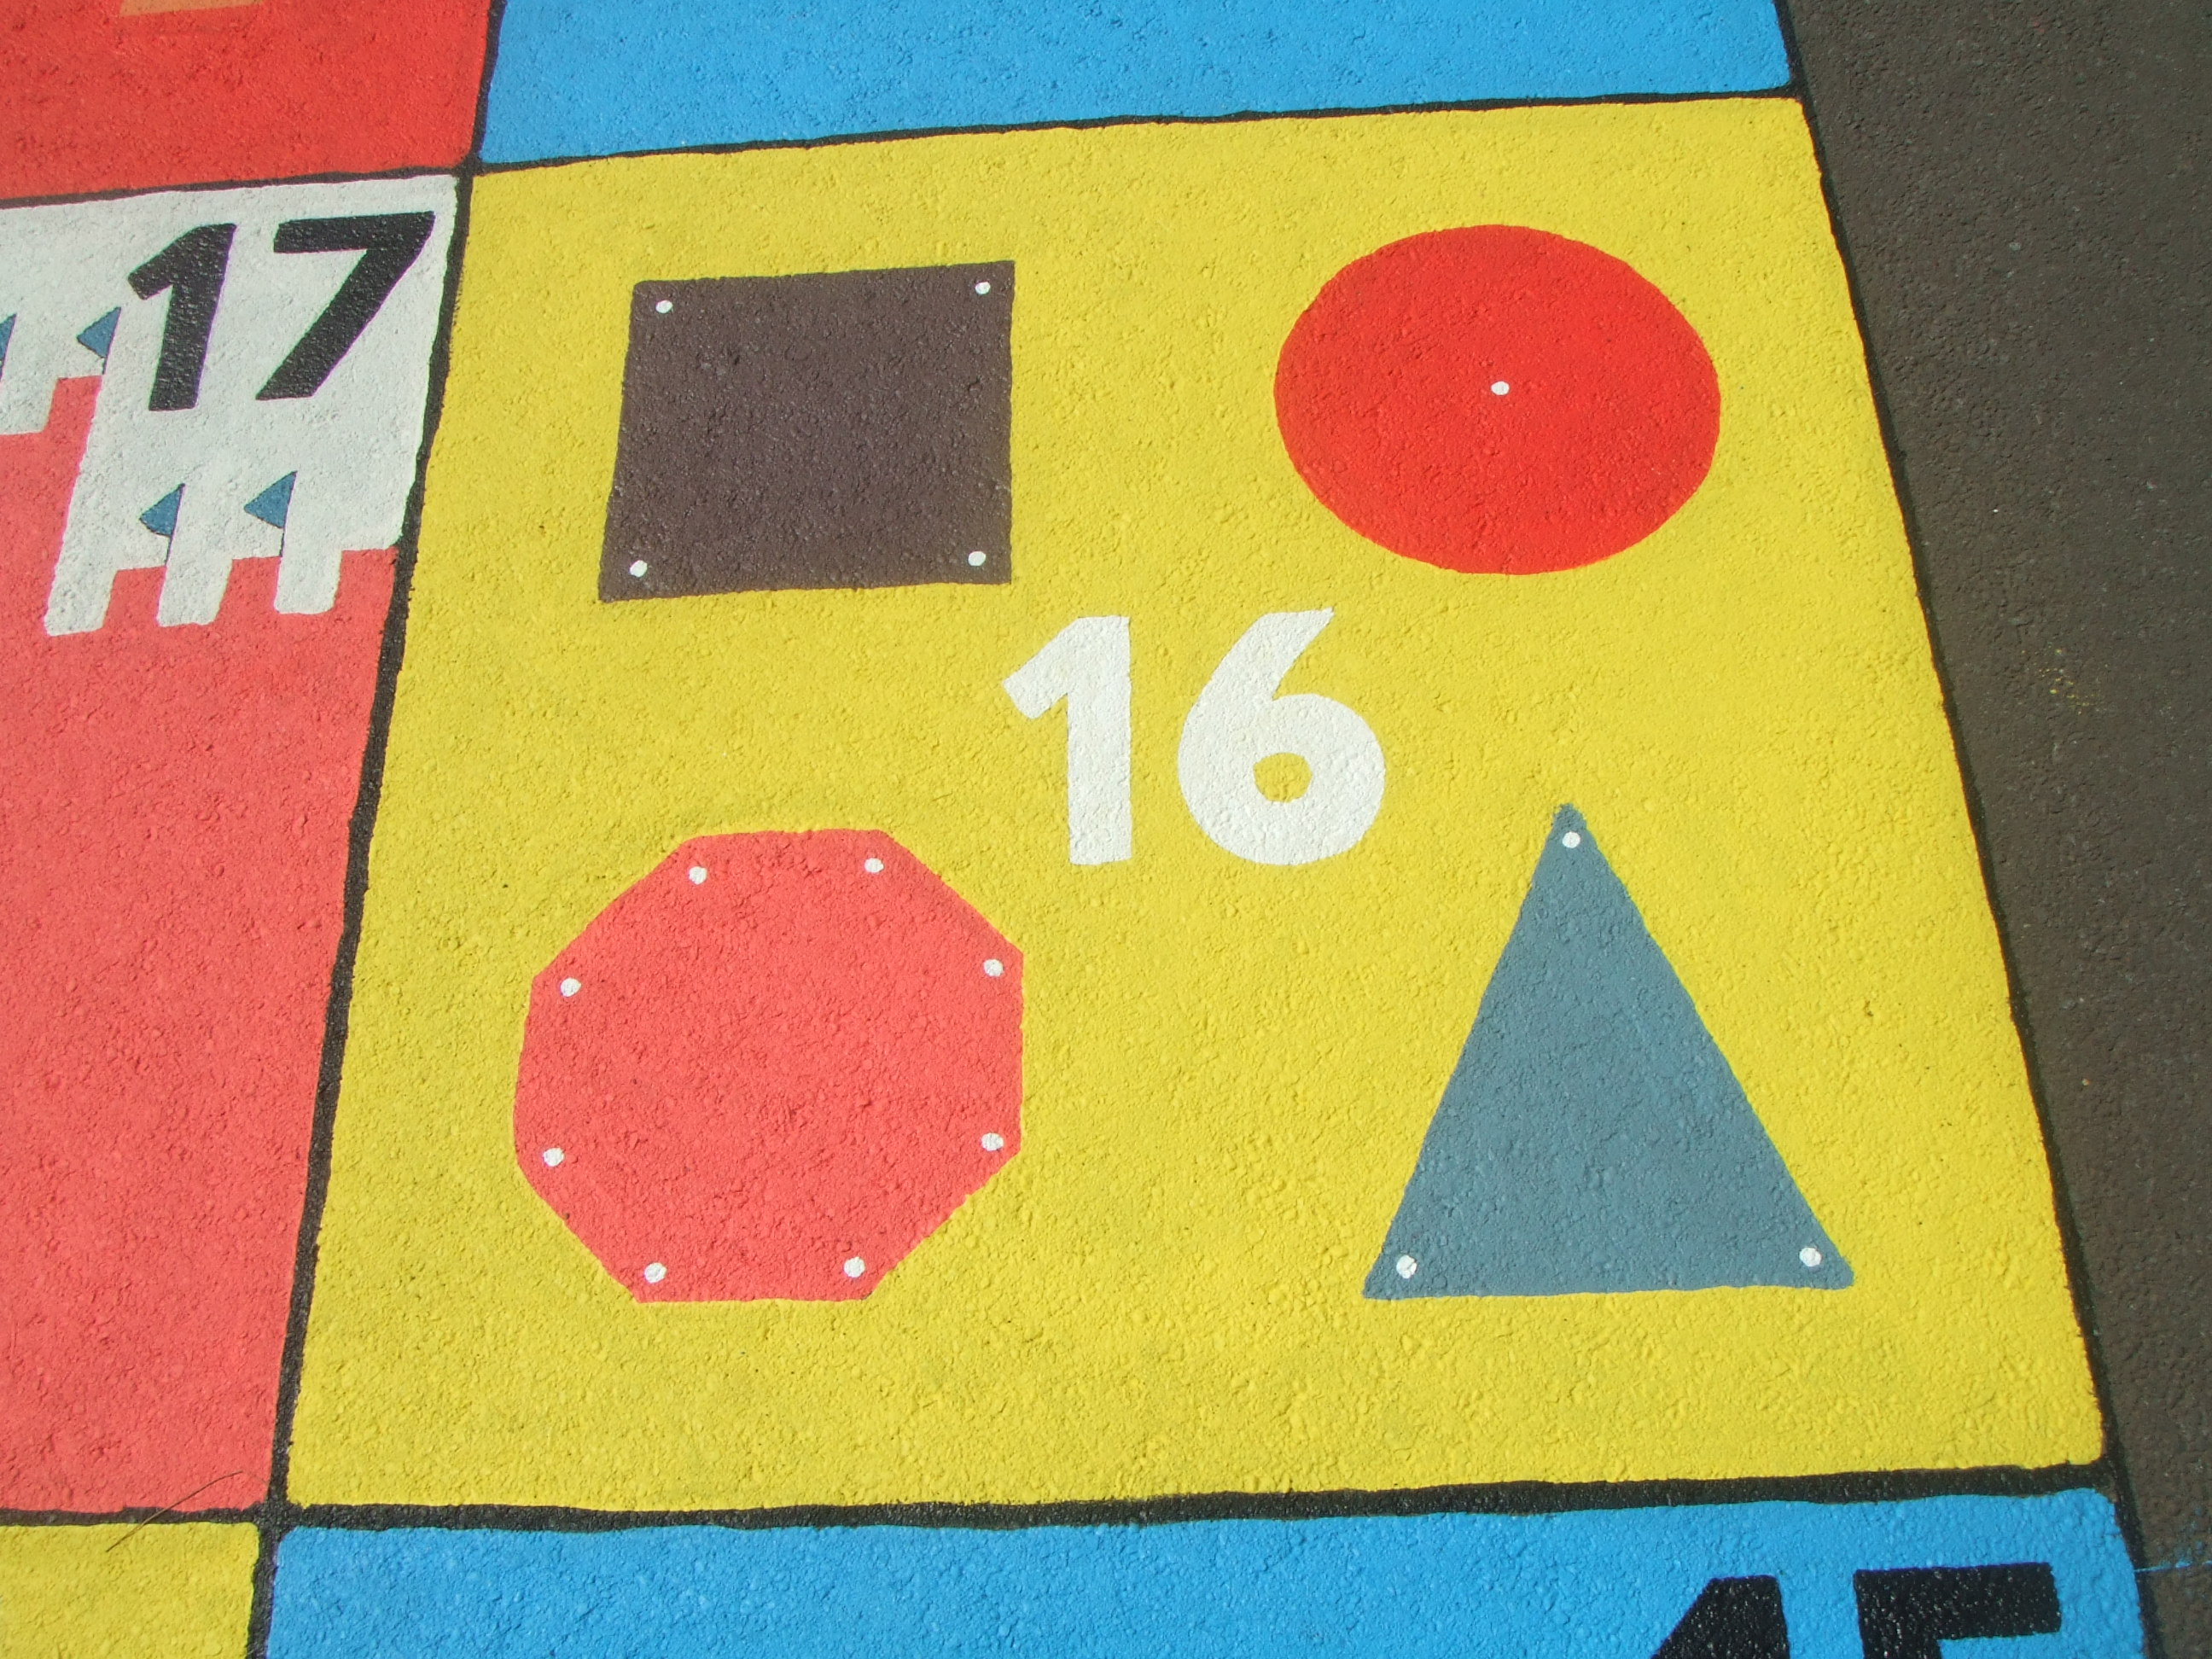 16 THE SHAPES